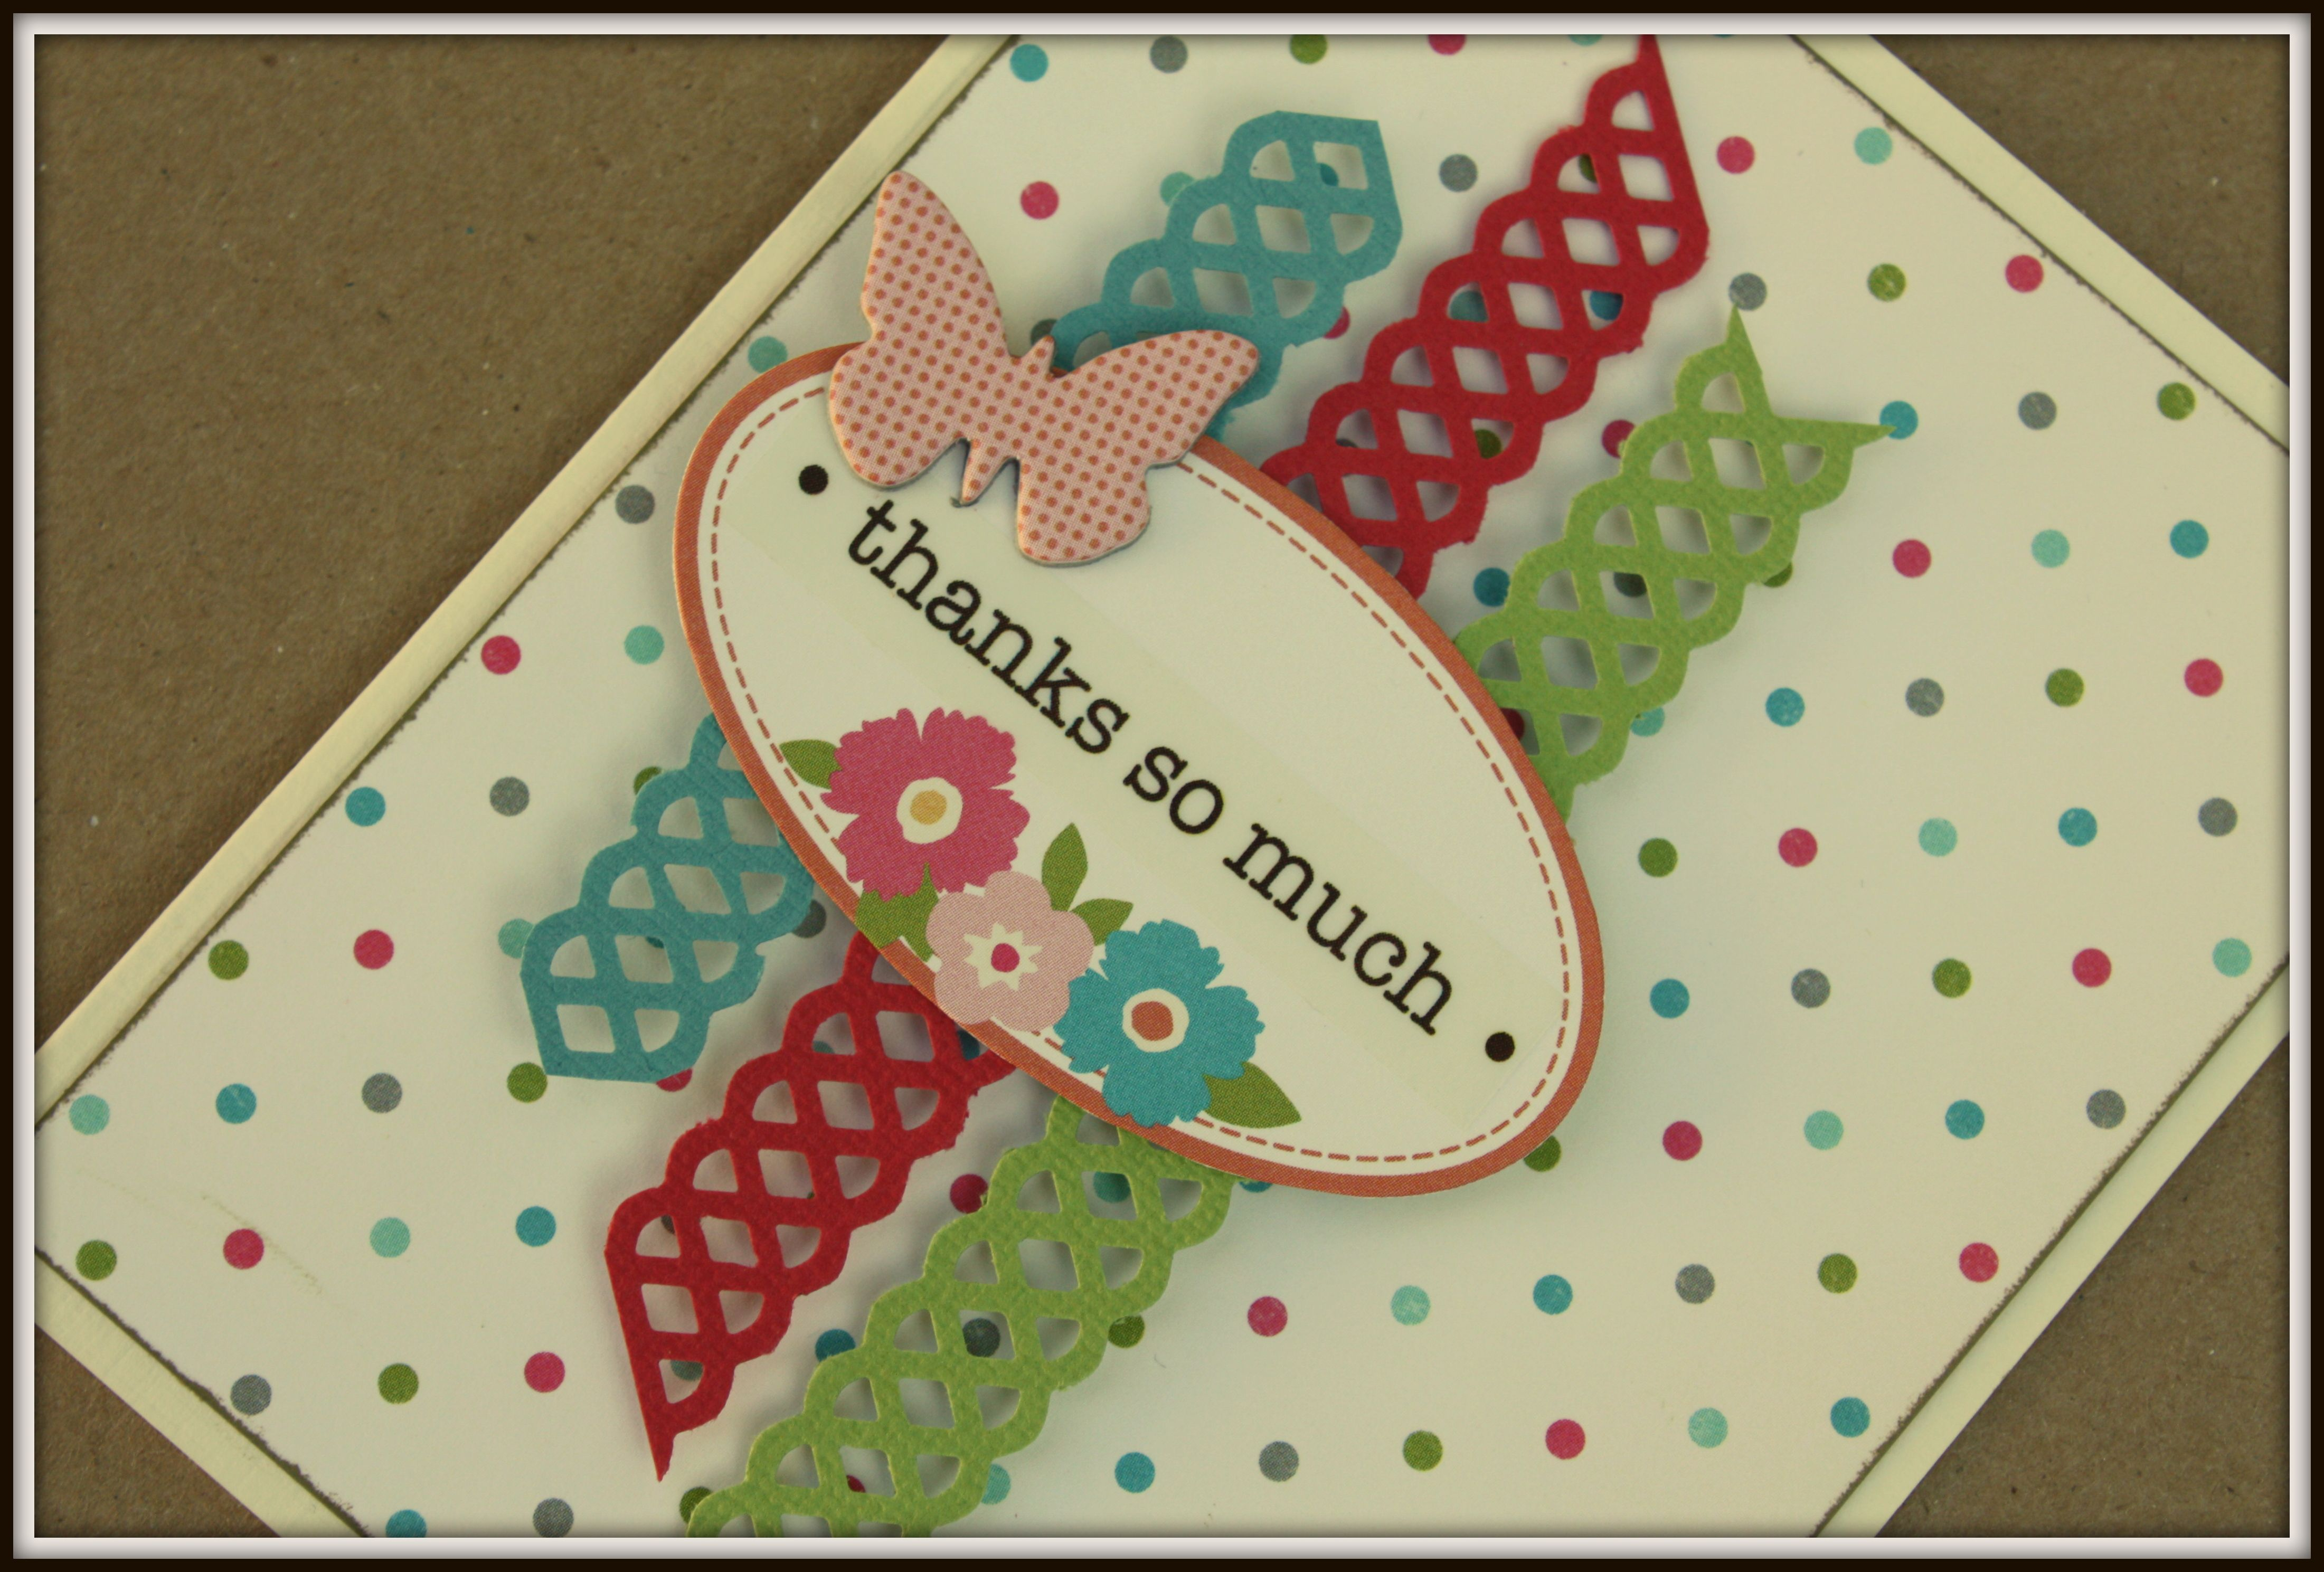 Thank You Card - Tonic Studios Simplicity Pattern Doily Strip Punch, October Afternoon Woodland Park, SRM Press Stickers